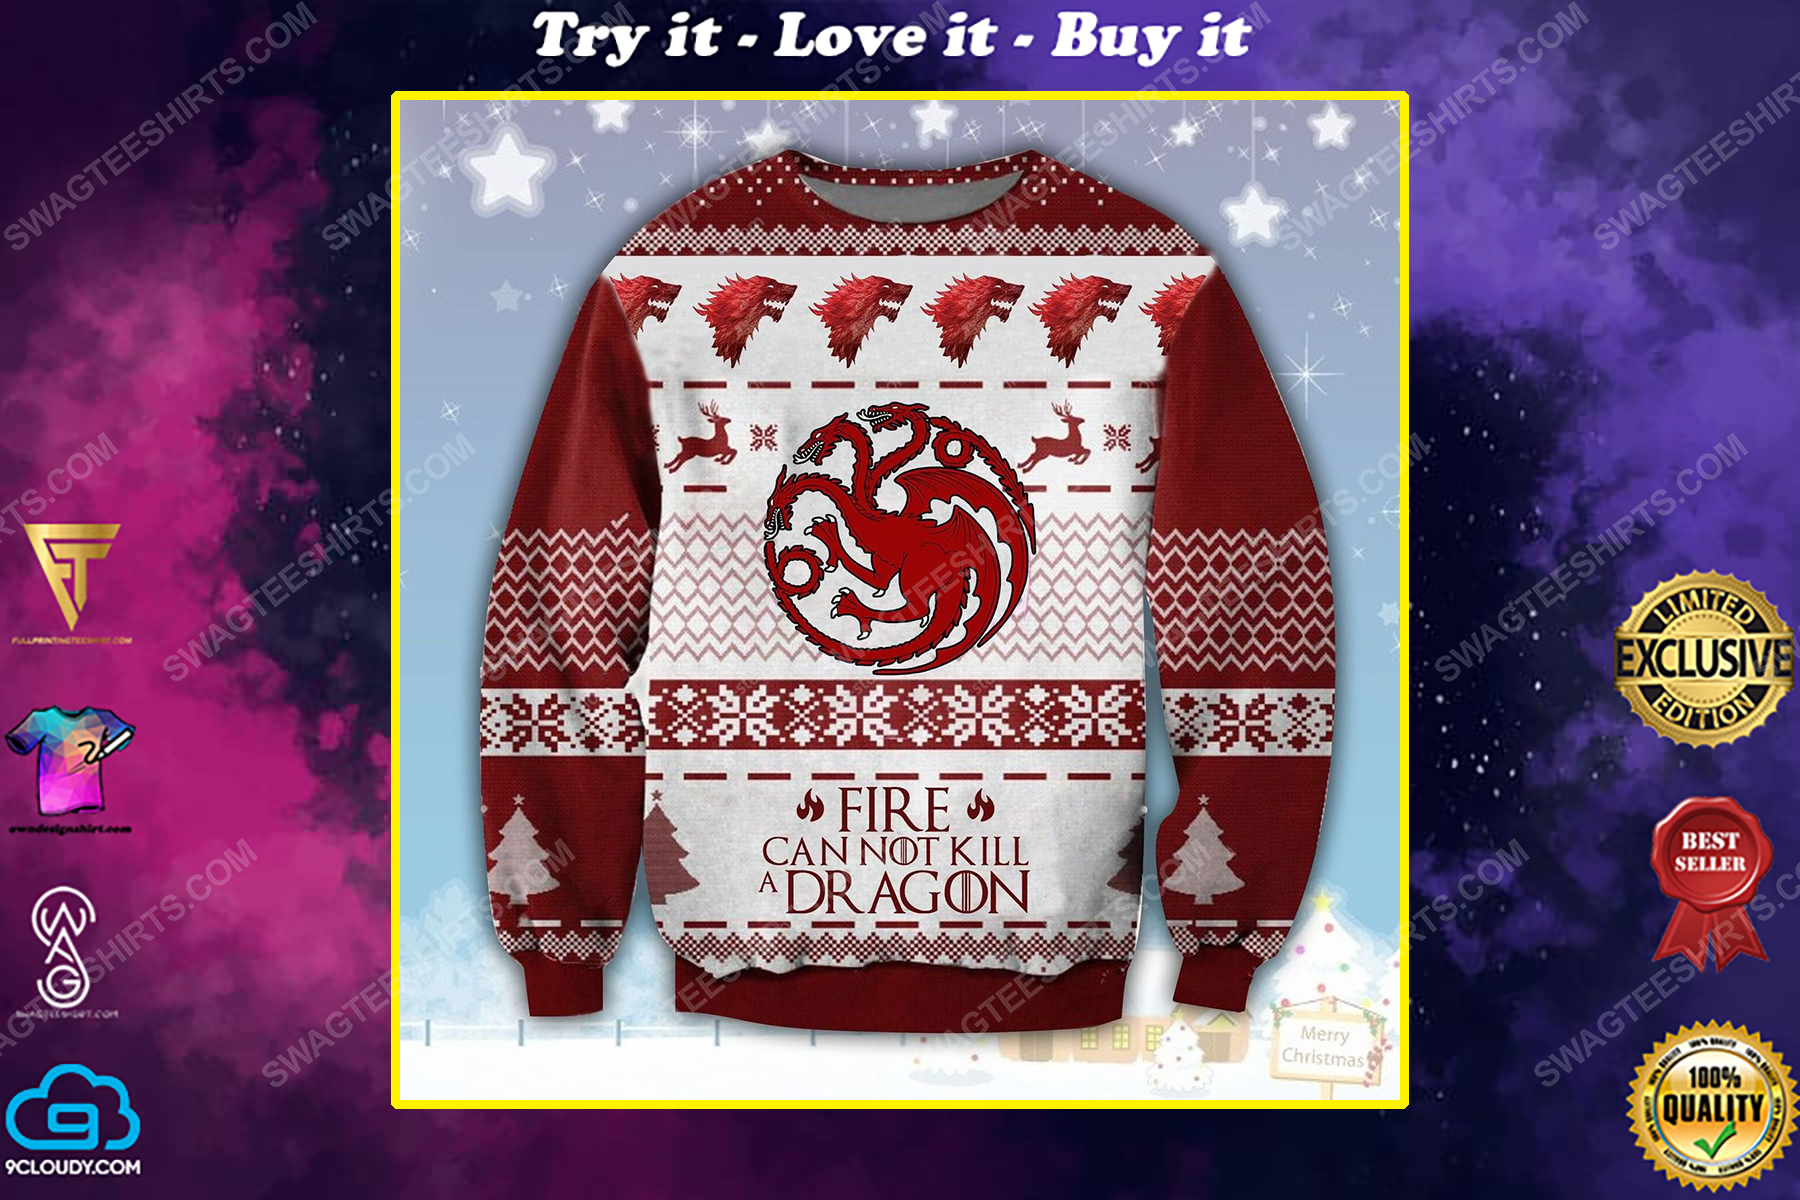 Game of thrones fire cannot kill a dragon ugly christmas sweater 1